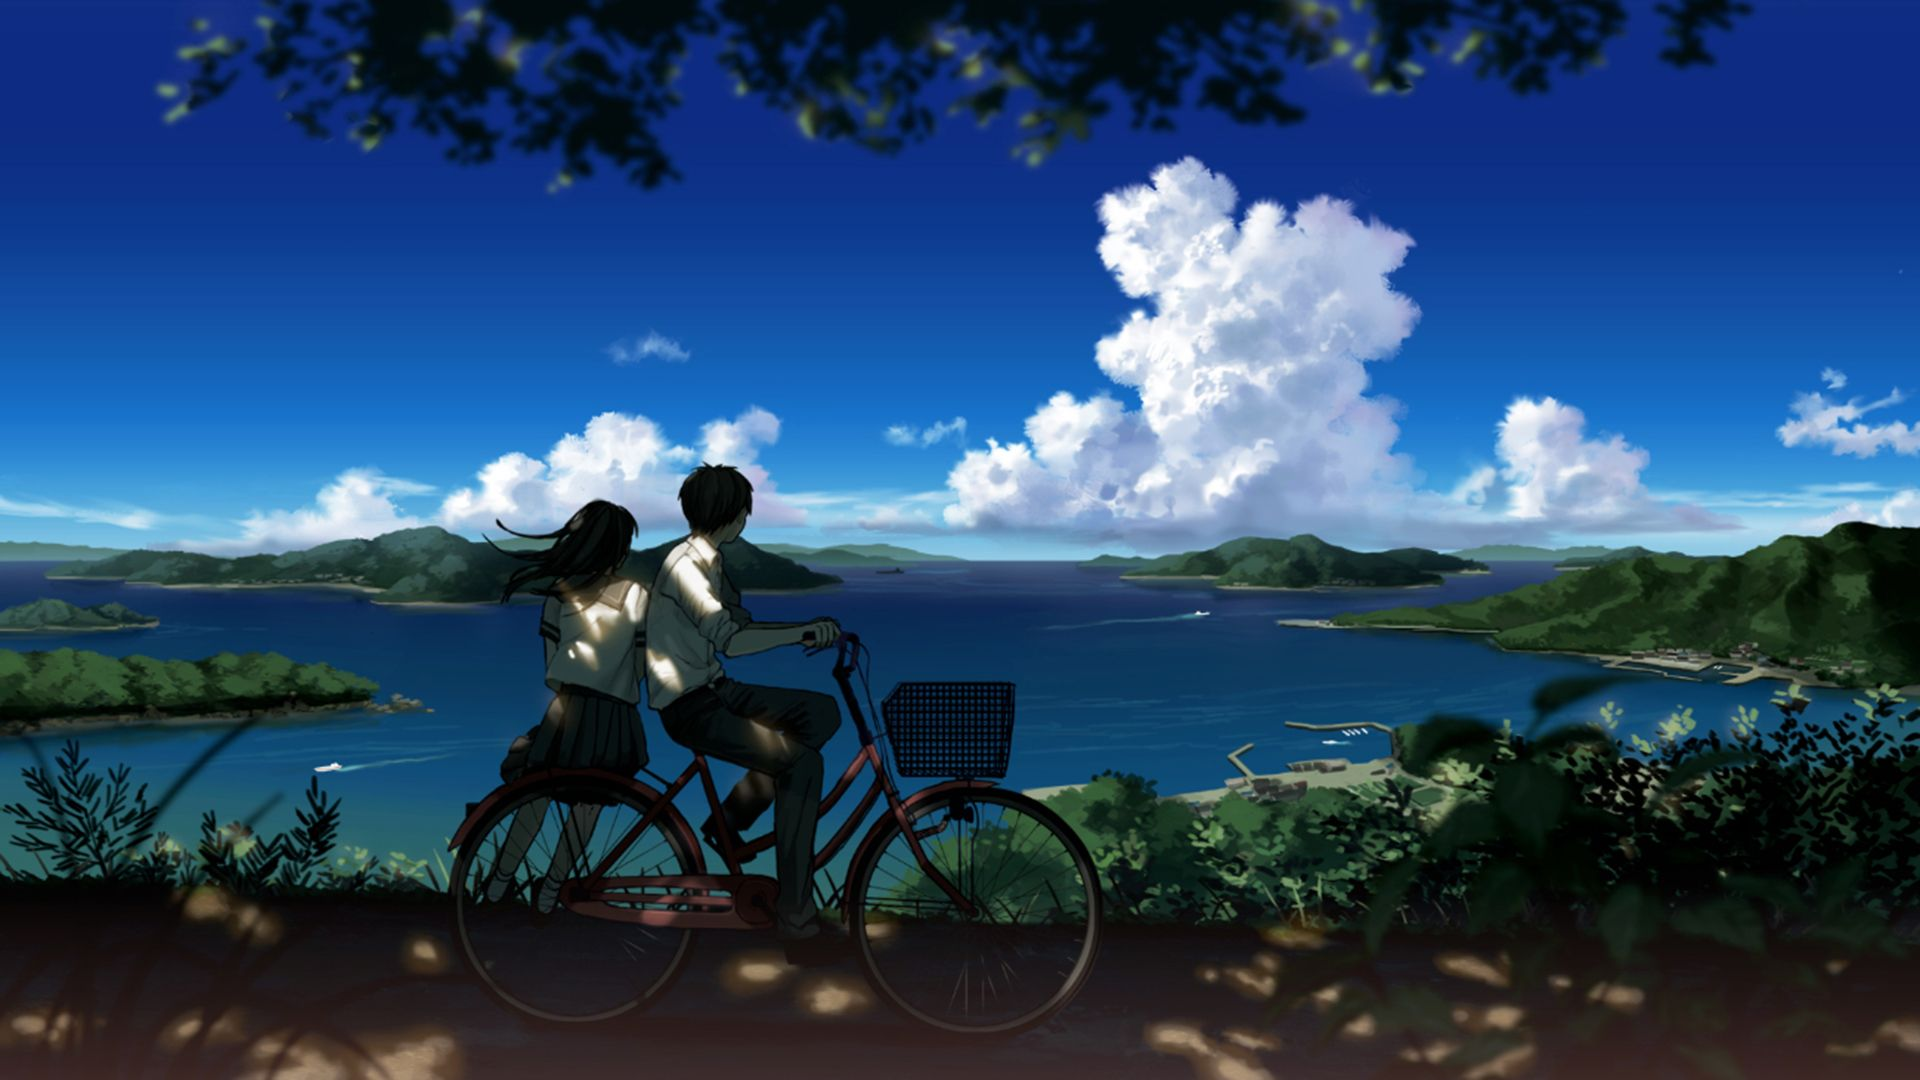 Boy And Girl Looking At Beautiful Landscape Hd Wallpaper 1920x1080 Id 44557 Anime Scenery Beautiful Landscape Pictures Anime Art Beautiful